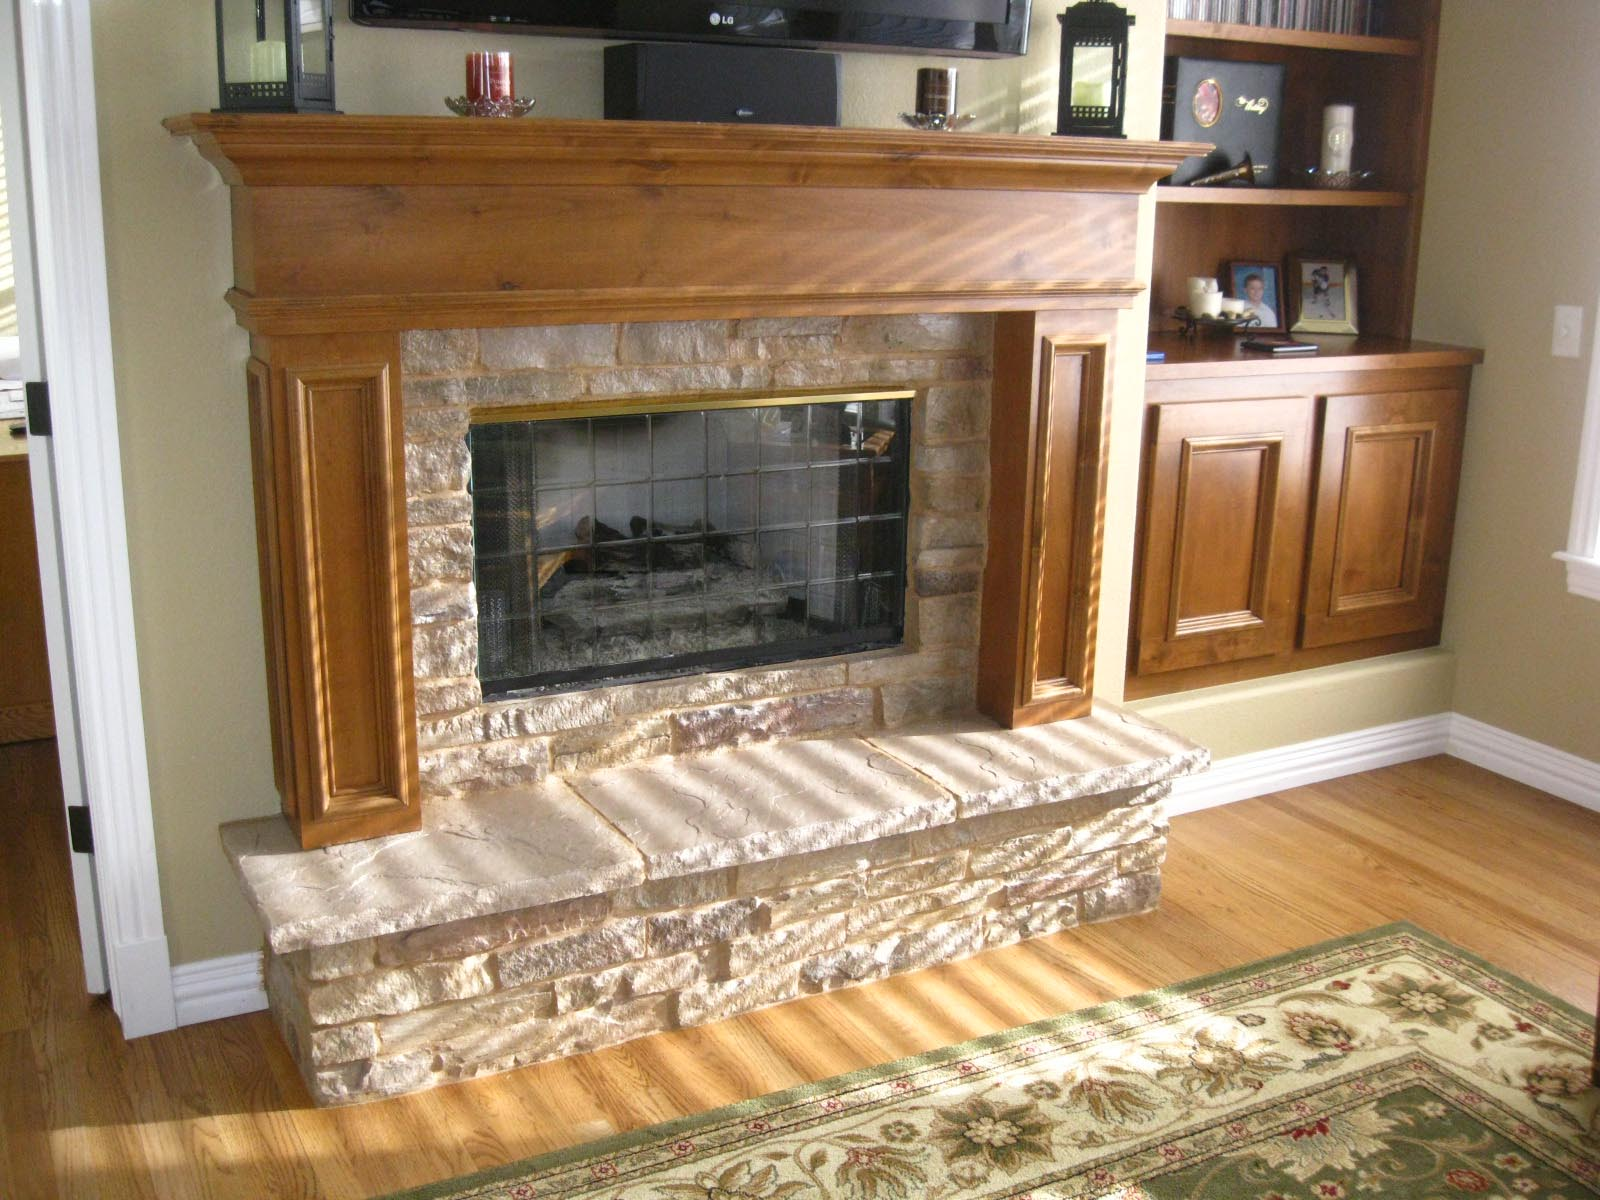 Variety of Fireplace Hearth Stone : Stone Slab Fireplace Hearth. Stone slab fireplace hearth. fireplace design